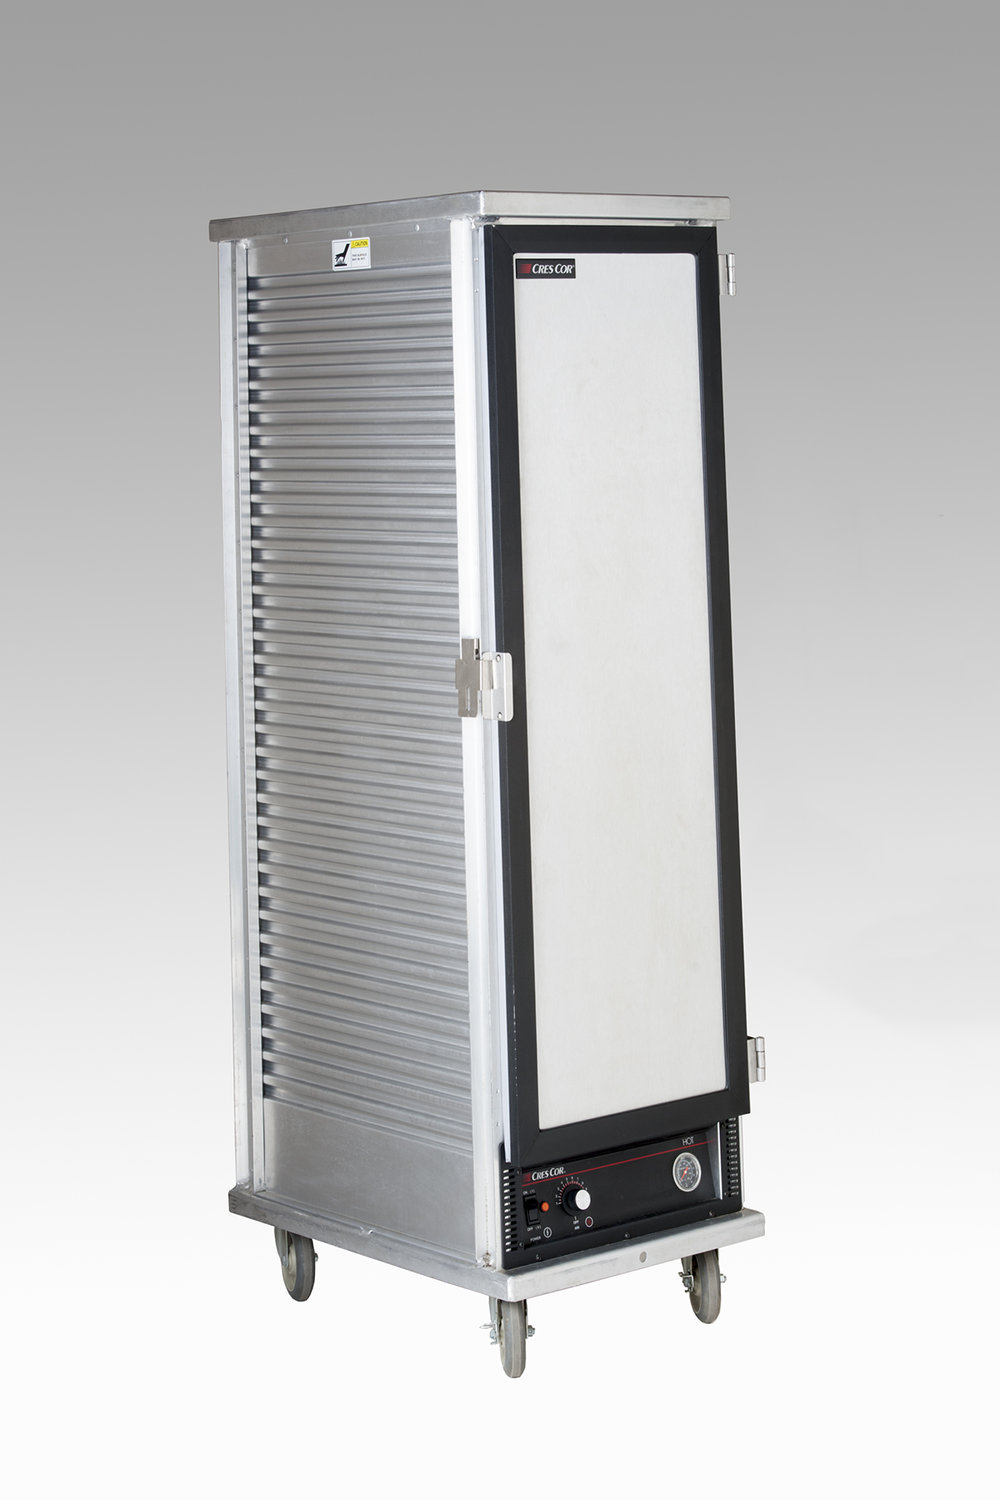 Crescore Electric Heated Cabinet Space for 36 Sheet Pans 18 amps $165.00